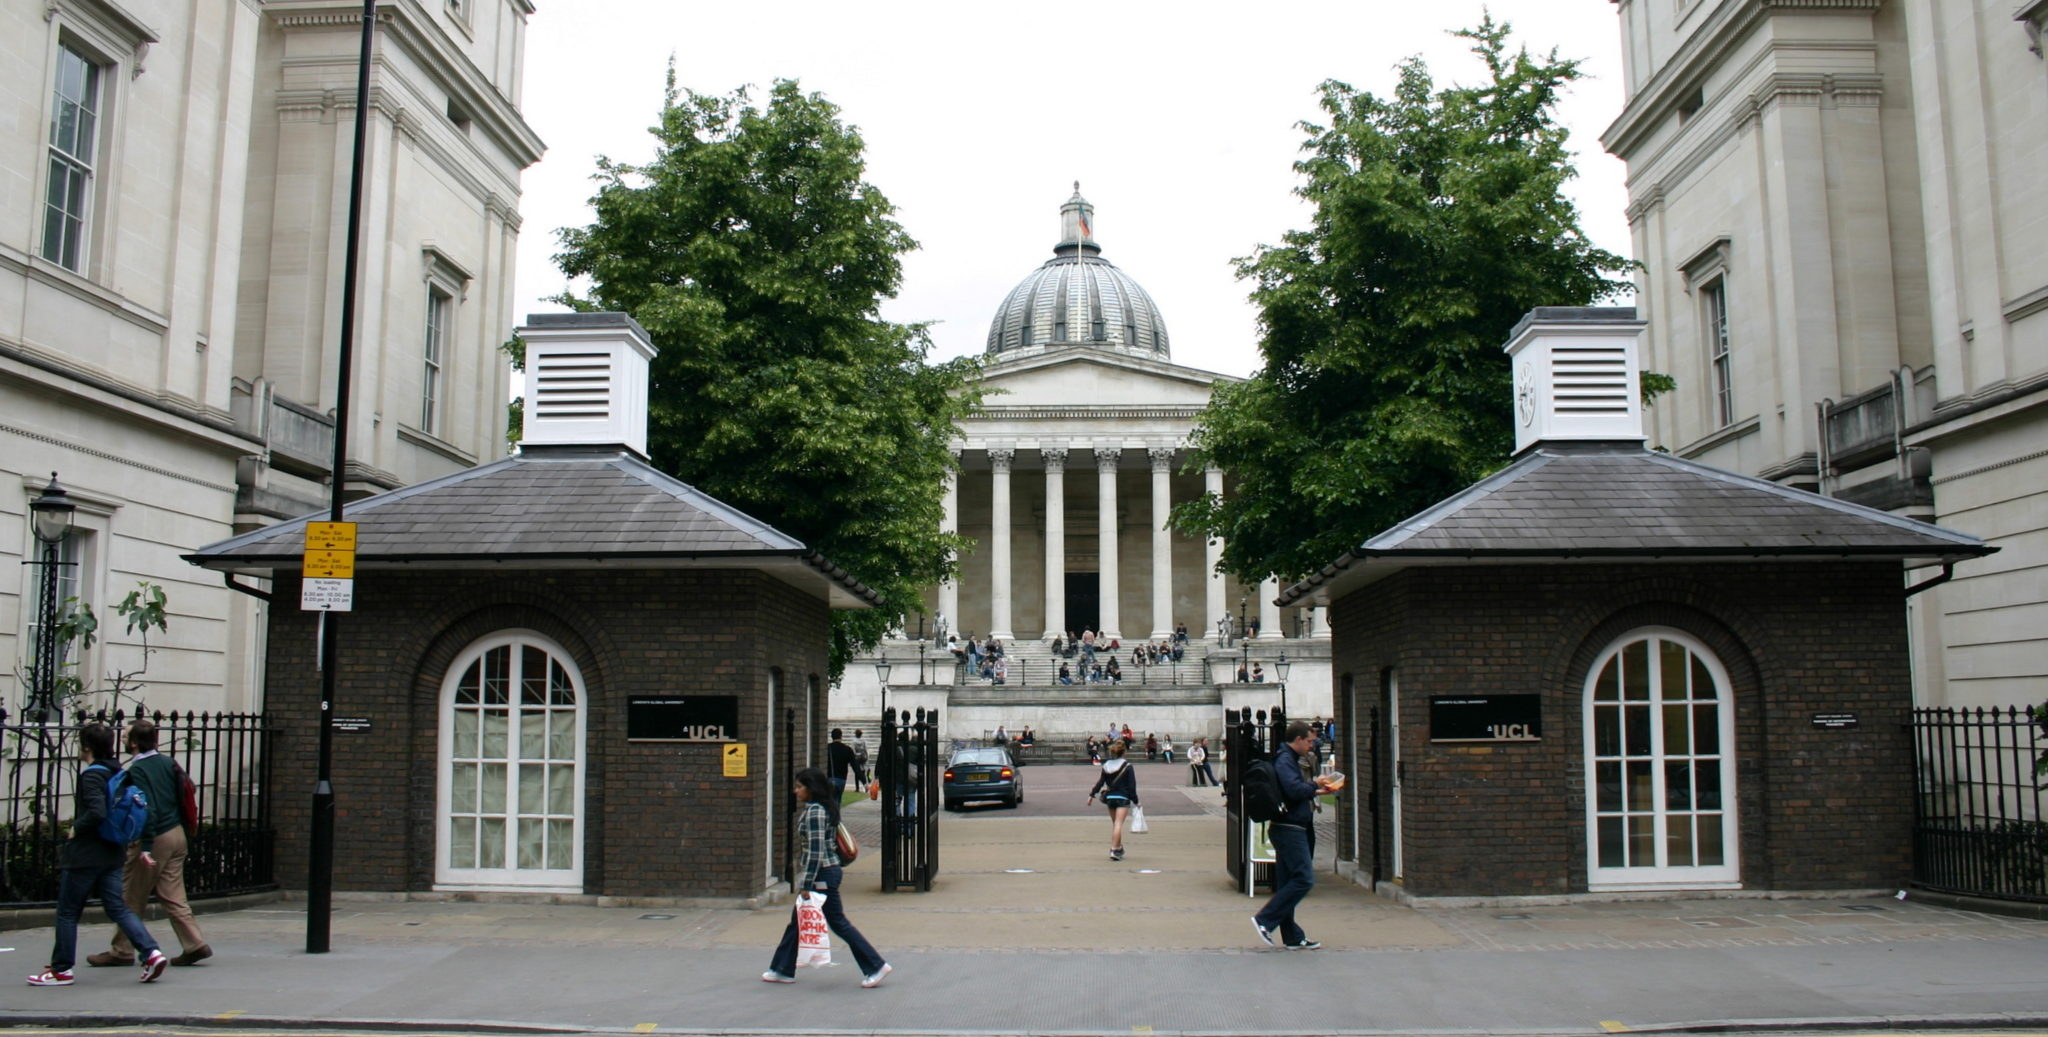 UCL to offer staff and students Covid tests when term resumes